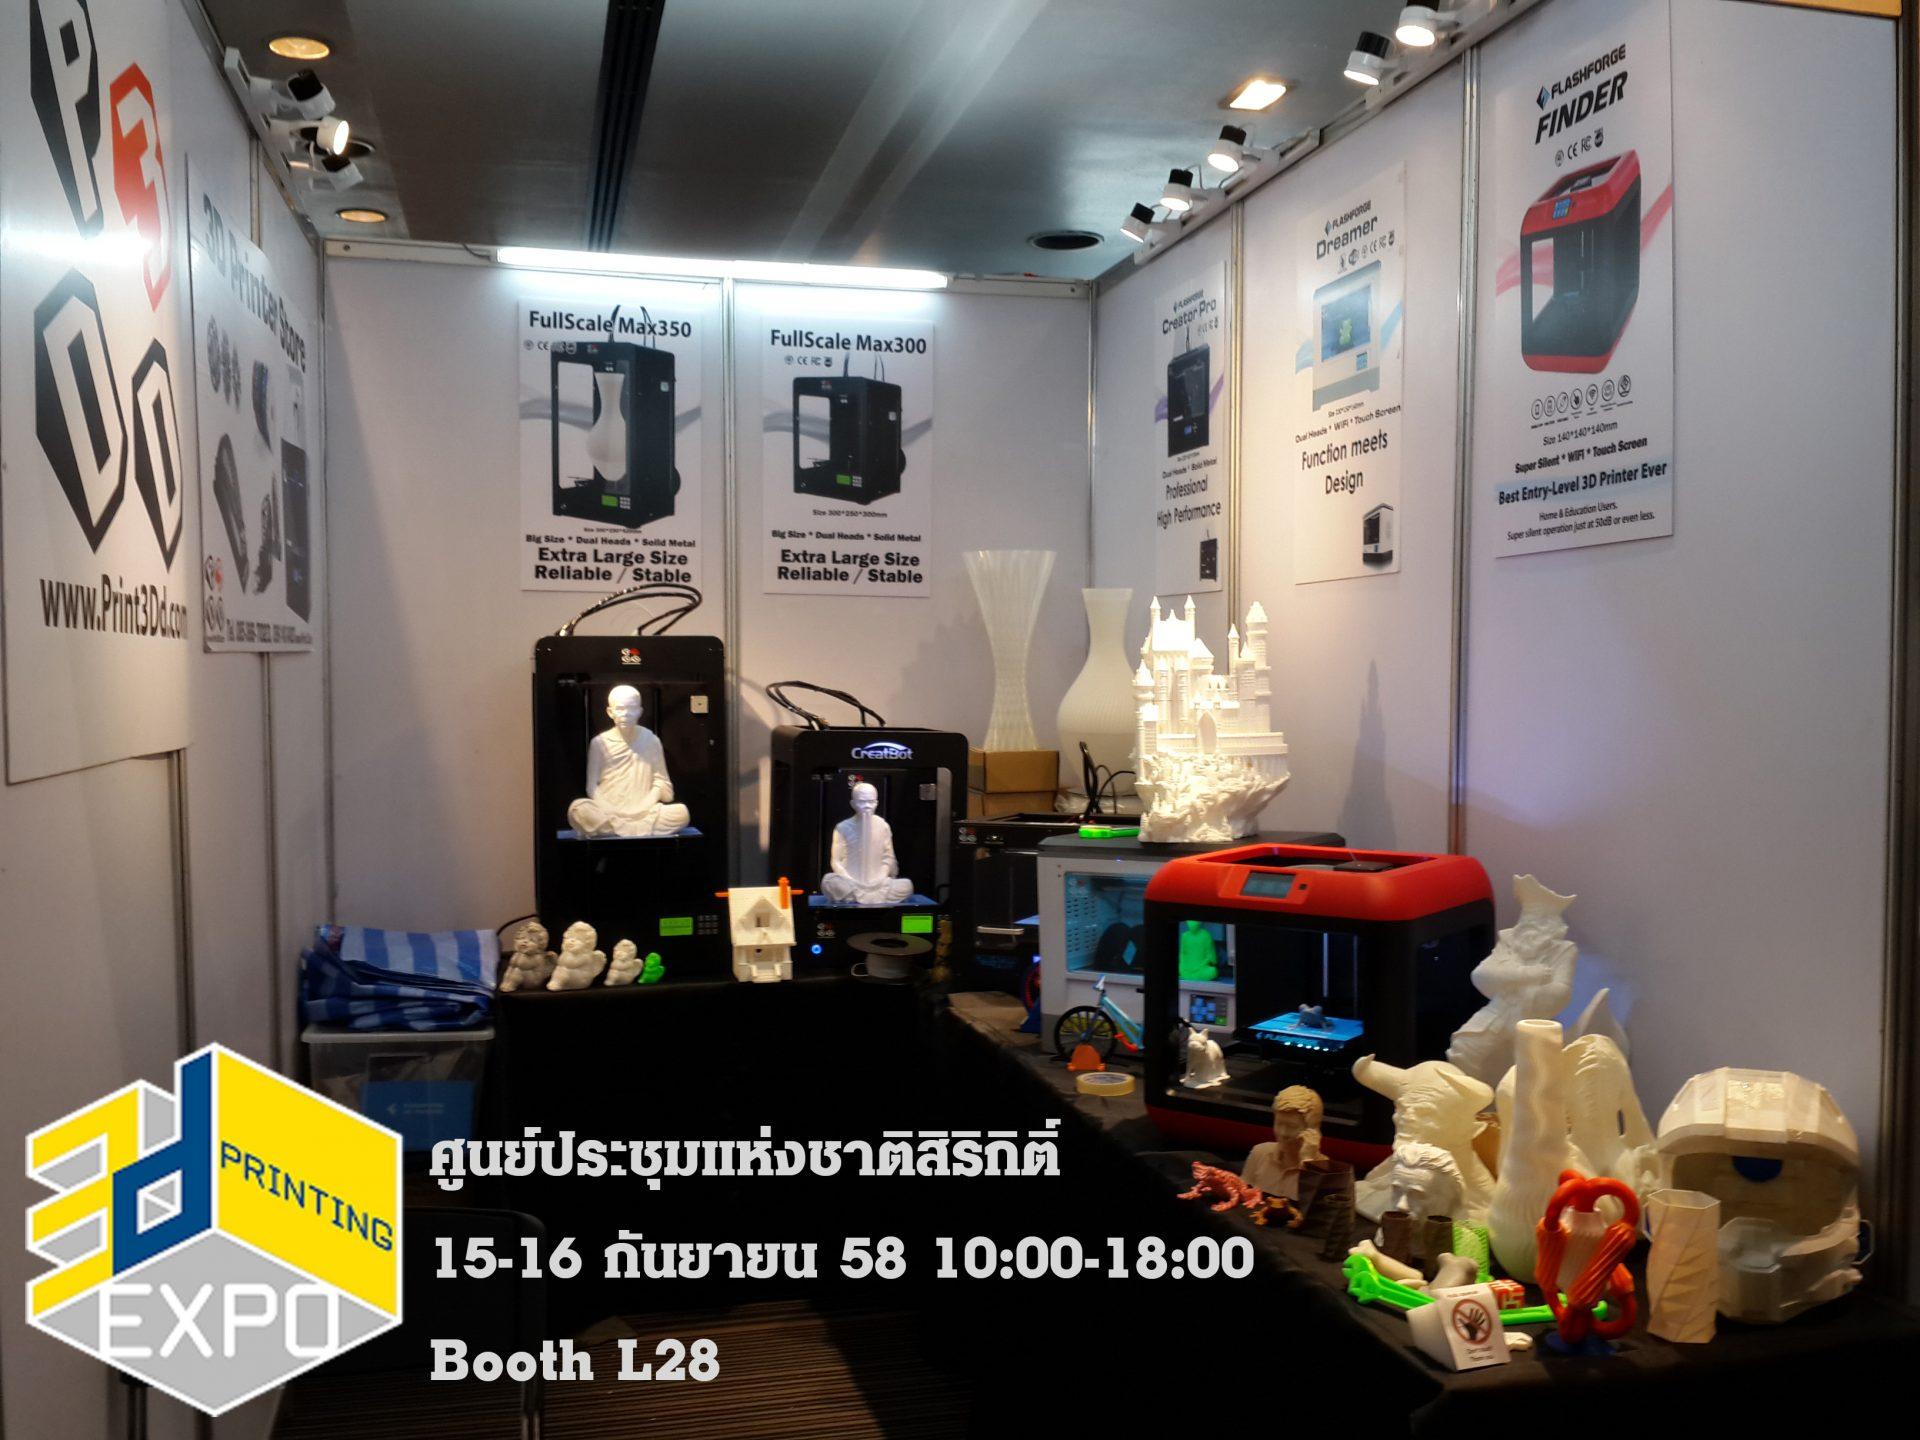 Thailand 3D Printing Expo 2015